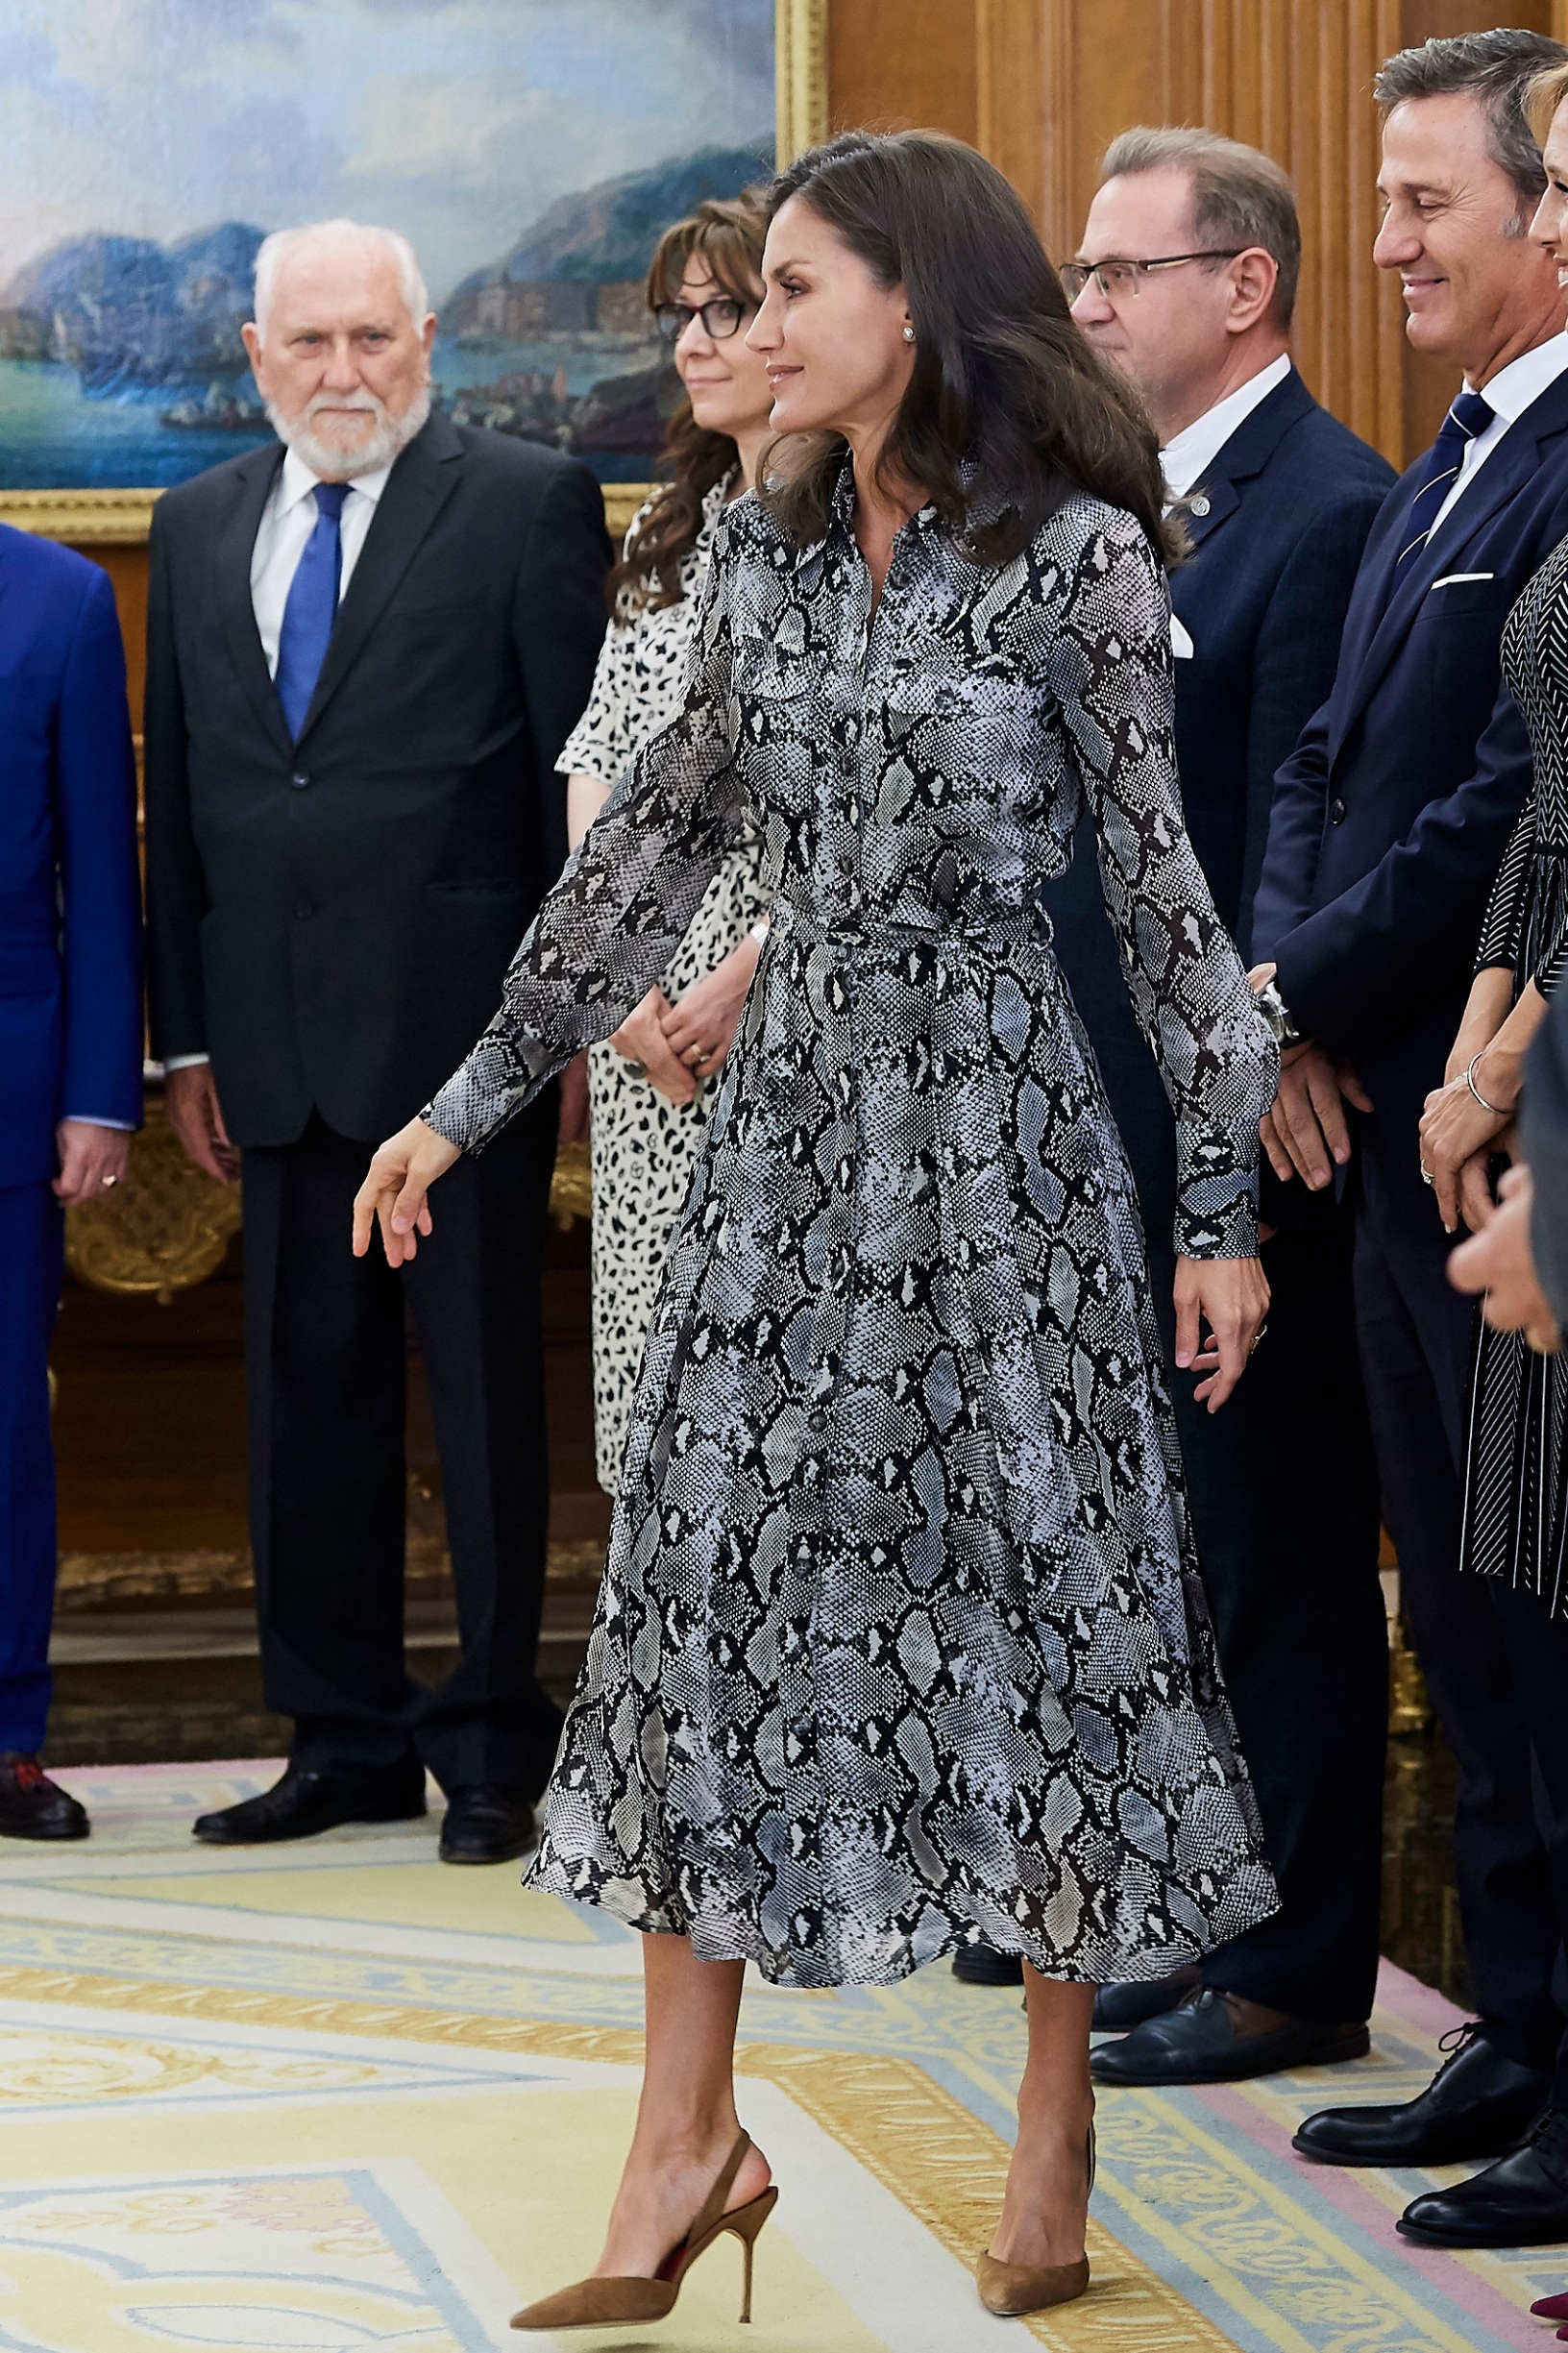 MADRID, SPAIN - OCTOBER 08: Queen Letizia of Spain attends several audiences at Zarzuela Palace on October 08, 2019 in Madrid, Spain. (Photo by Carlos Alvarez/Getty Images)